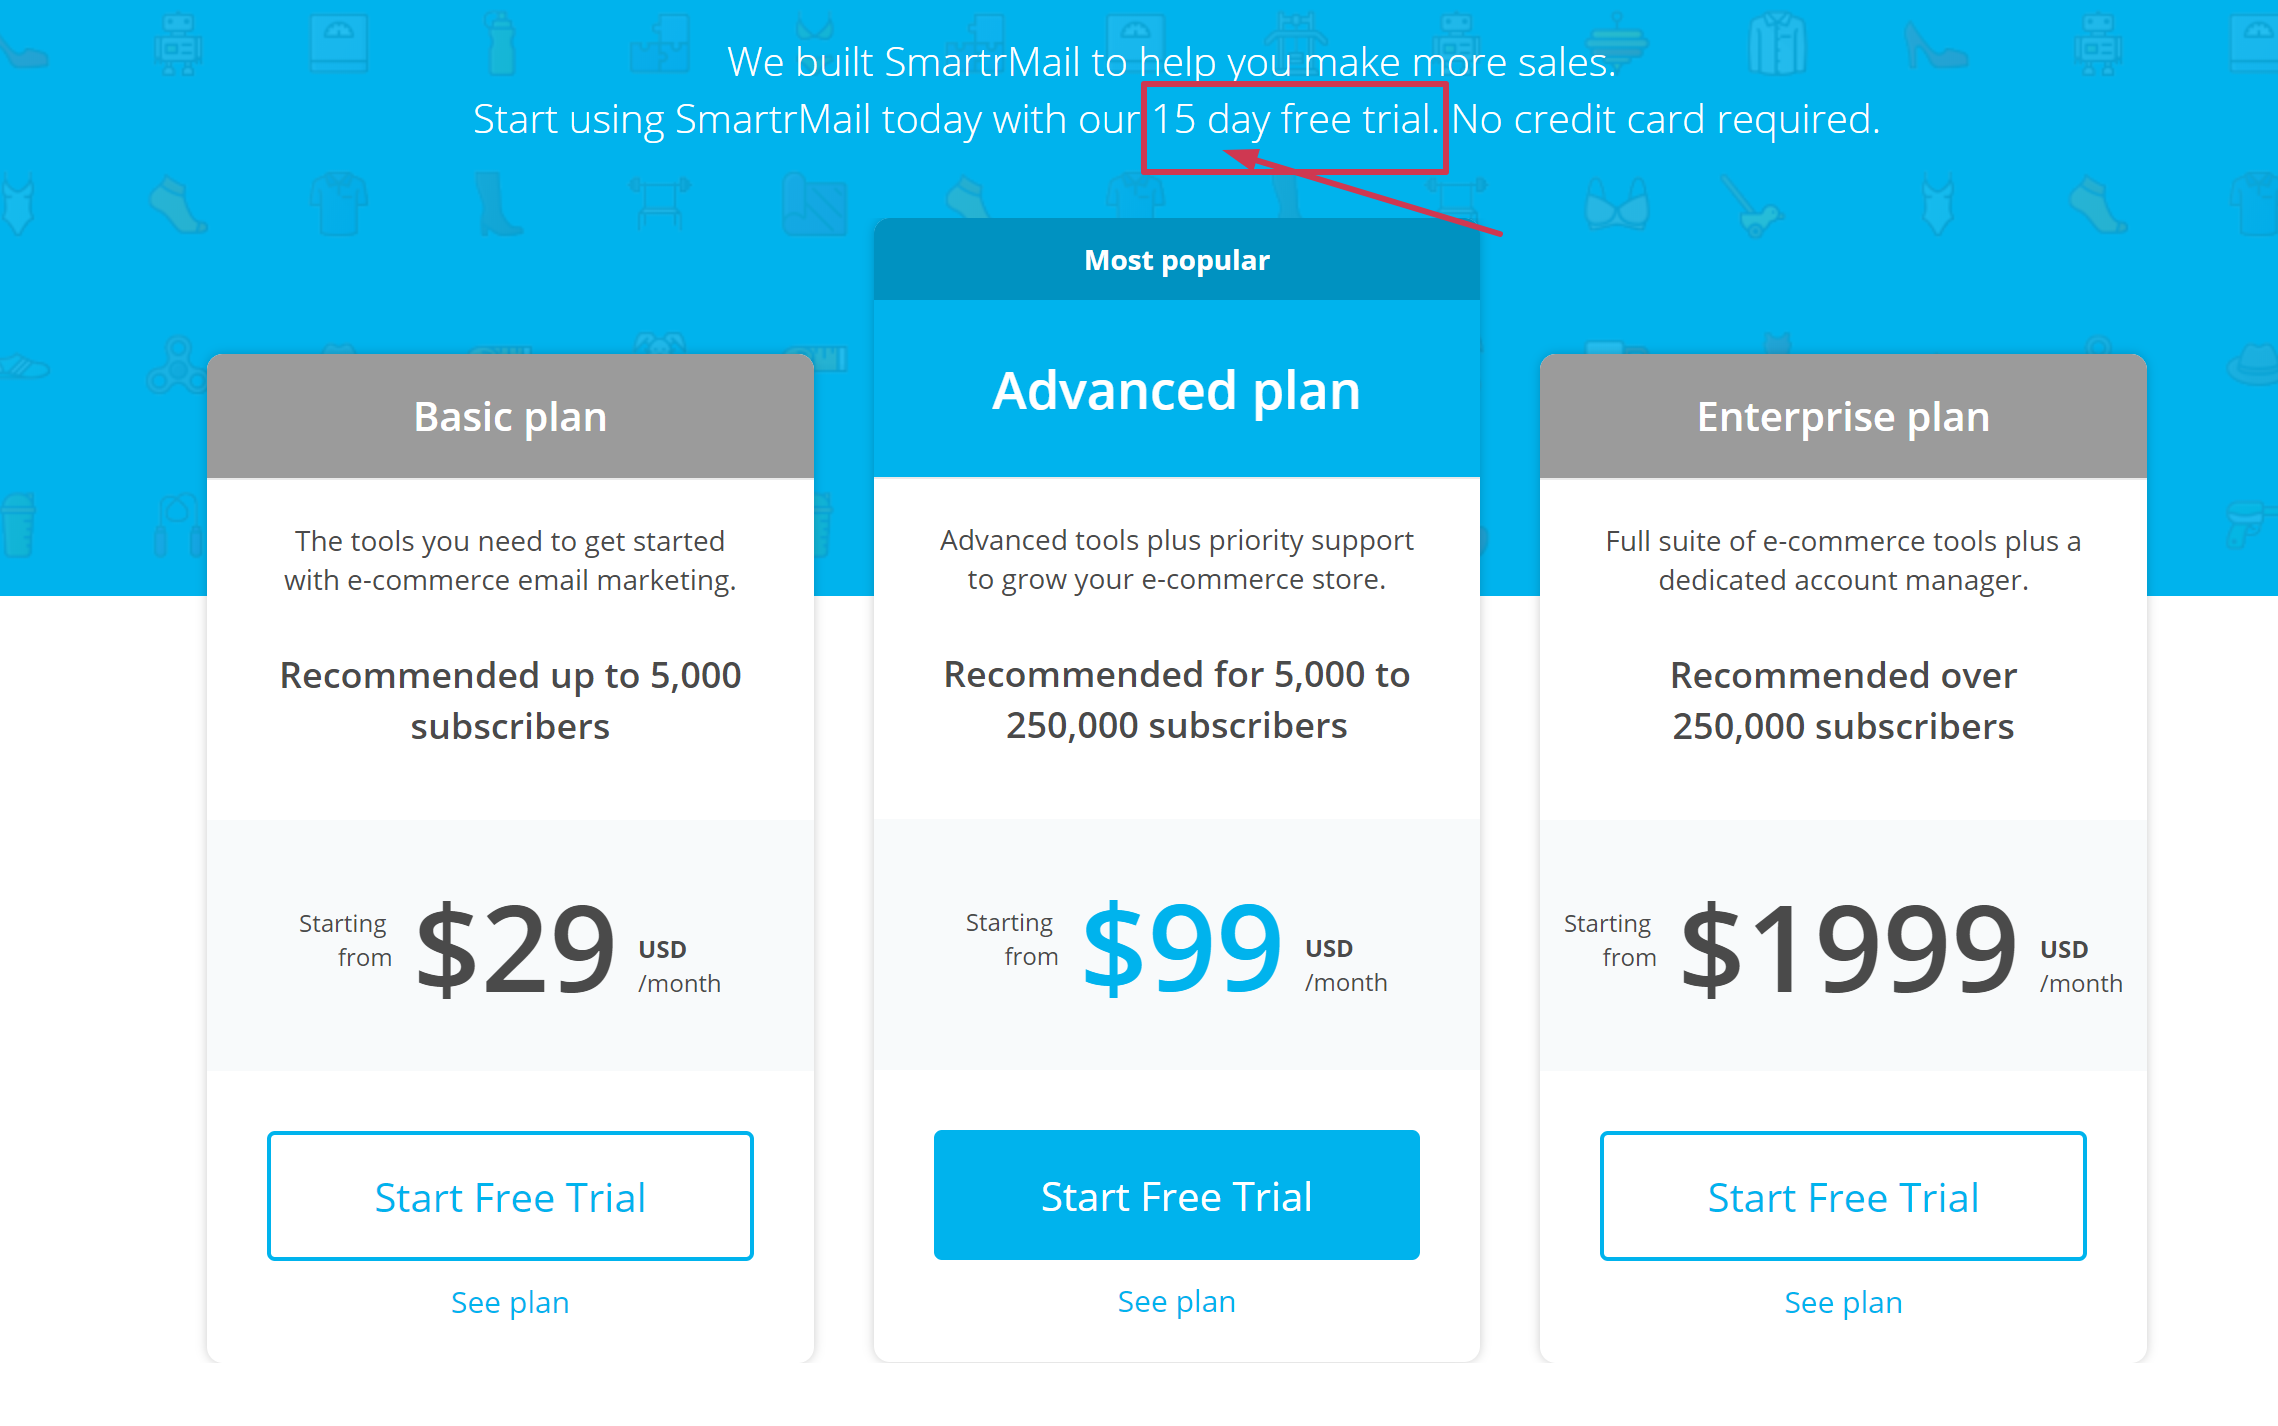 smartrmail discount coupon free trial